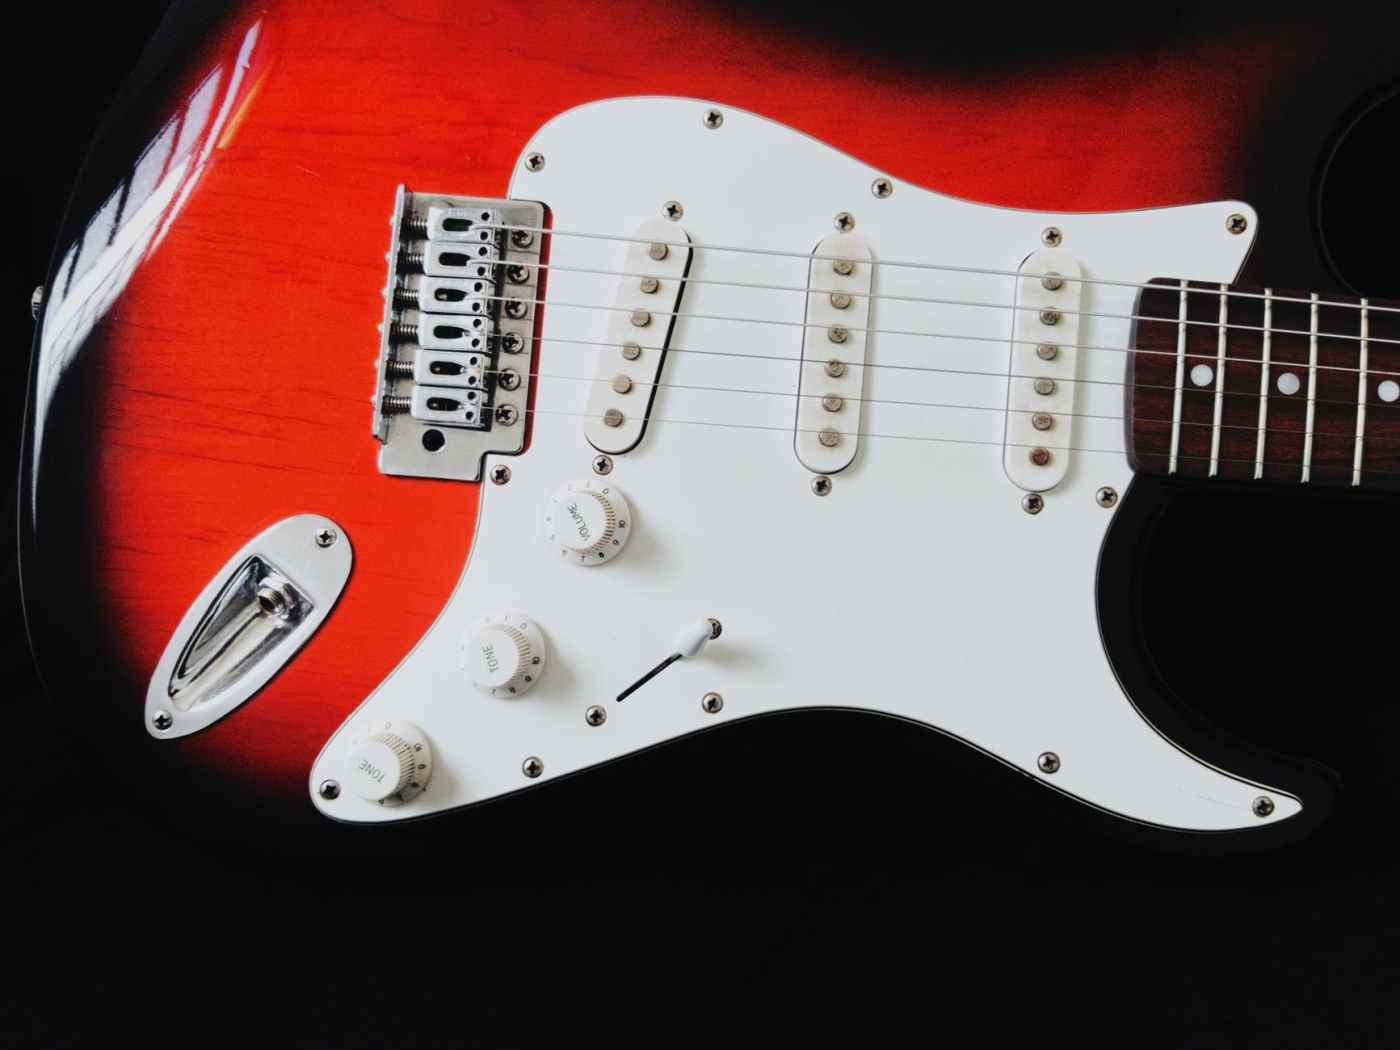 photo of electric guitar